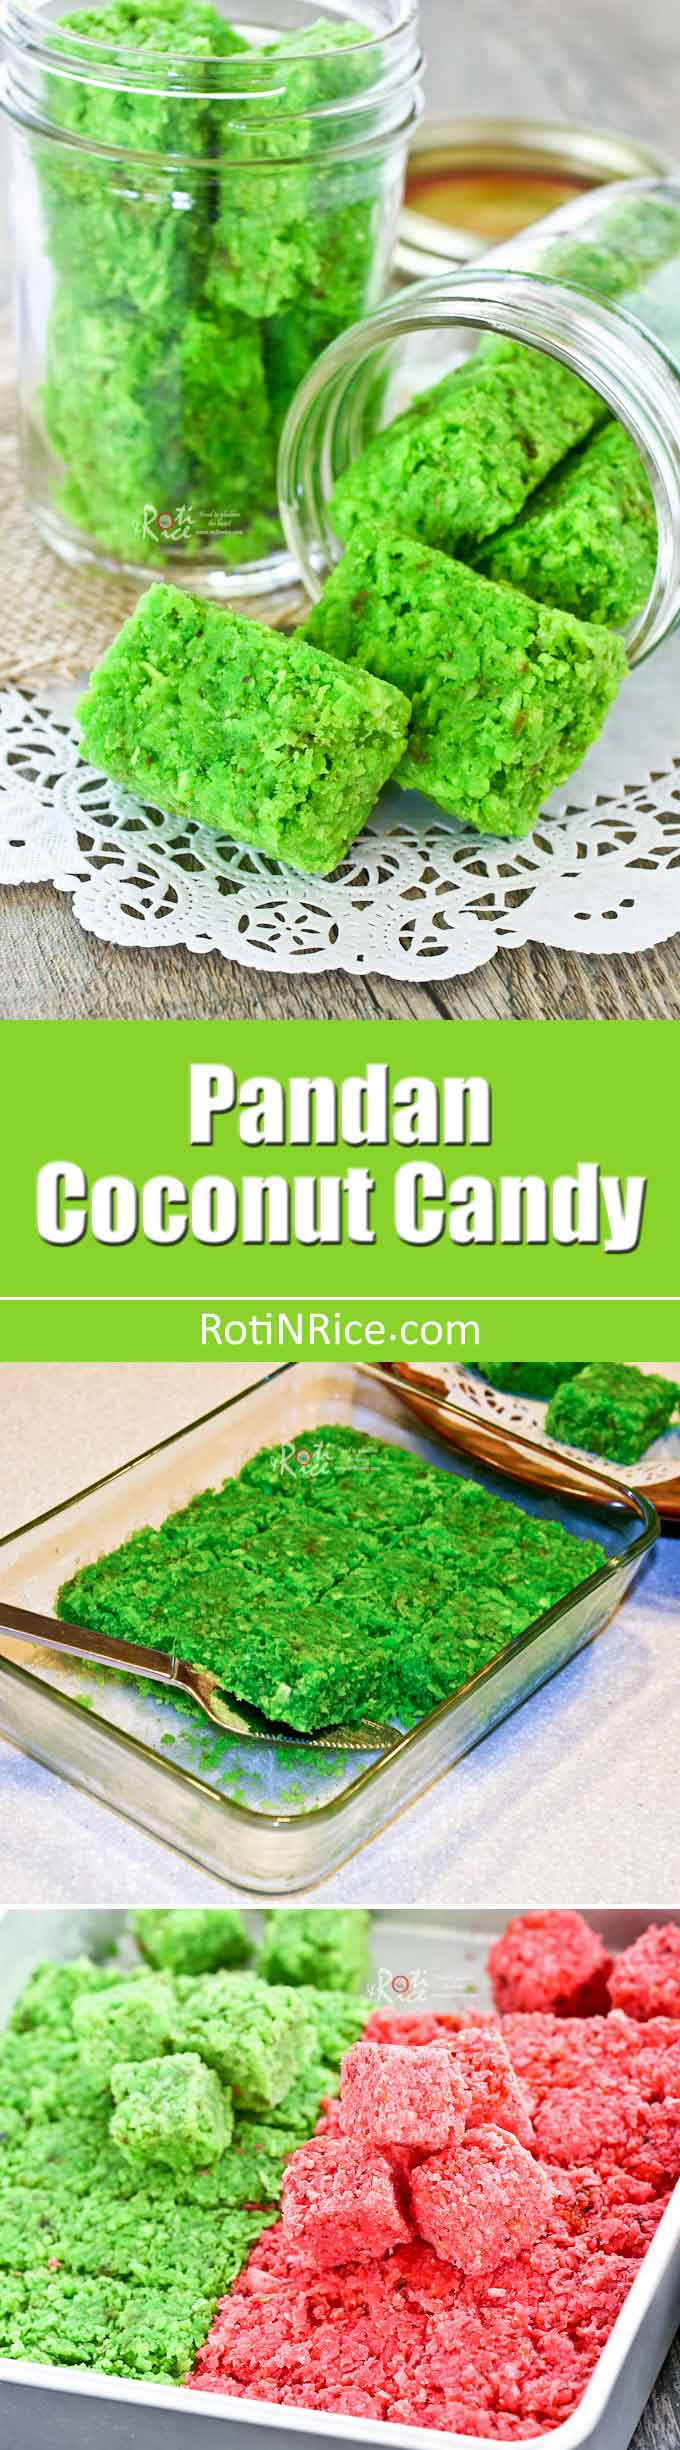 These fragrant and delicious Pandan Coconut Candy flavored with pandan paste are sure to delight. Can be made ahead for all your parties and gatherings. | RotiNRice.com